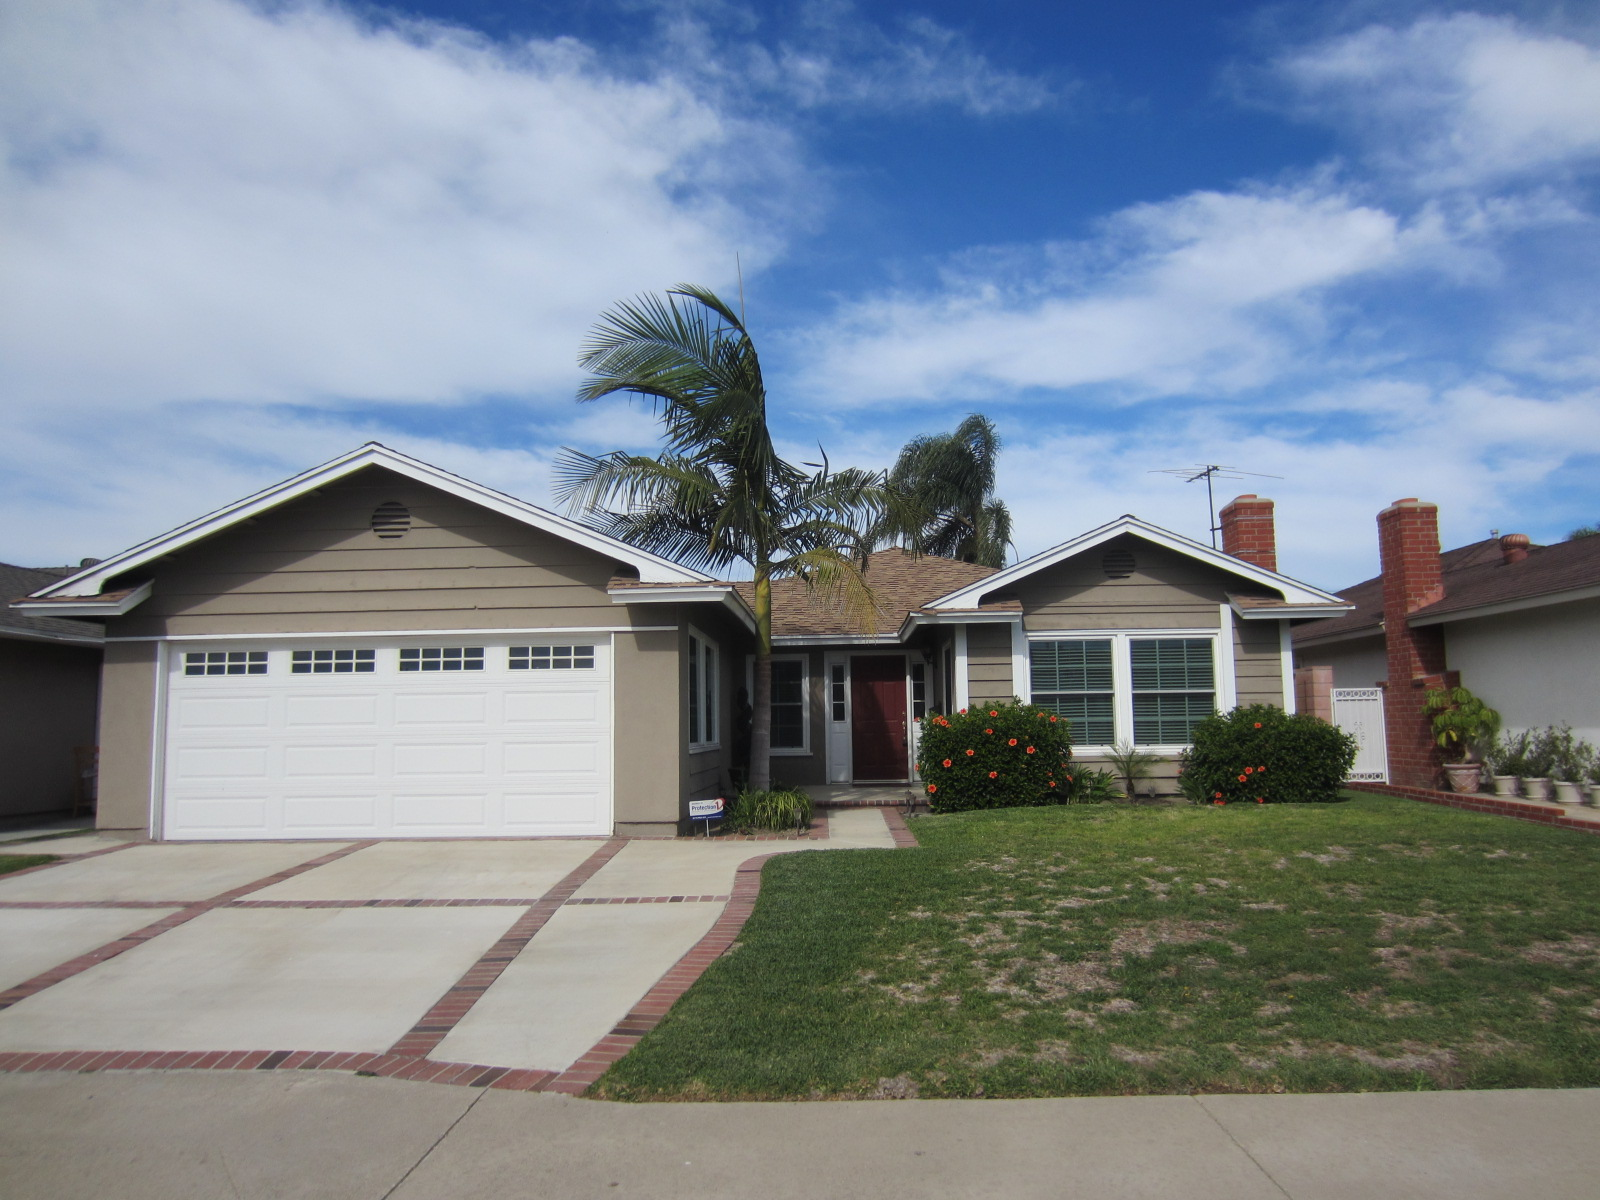 House for Rent in huntington beach